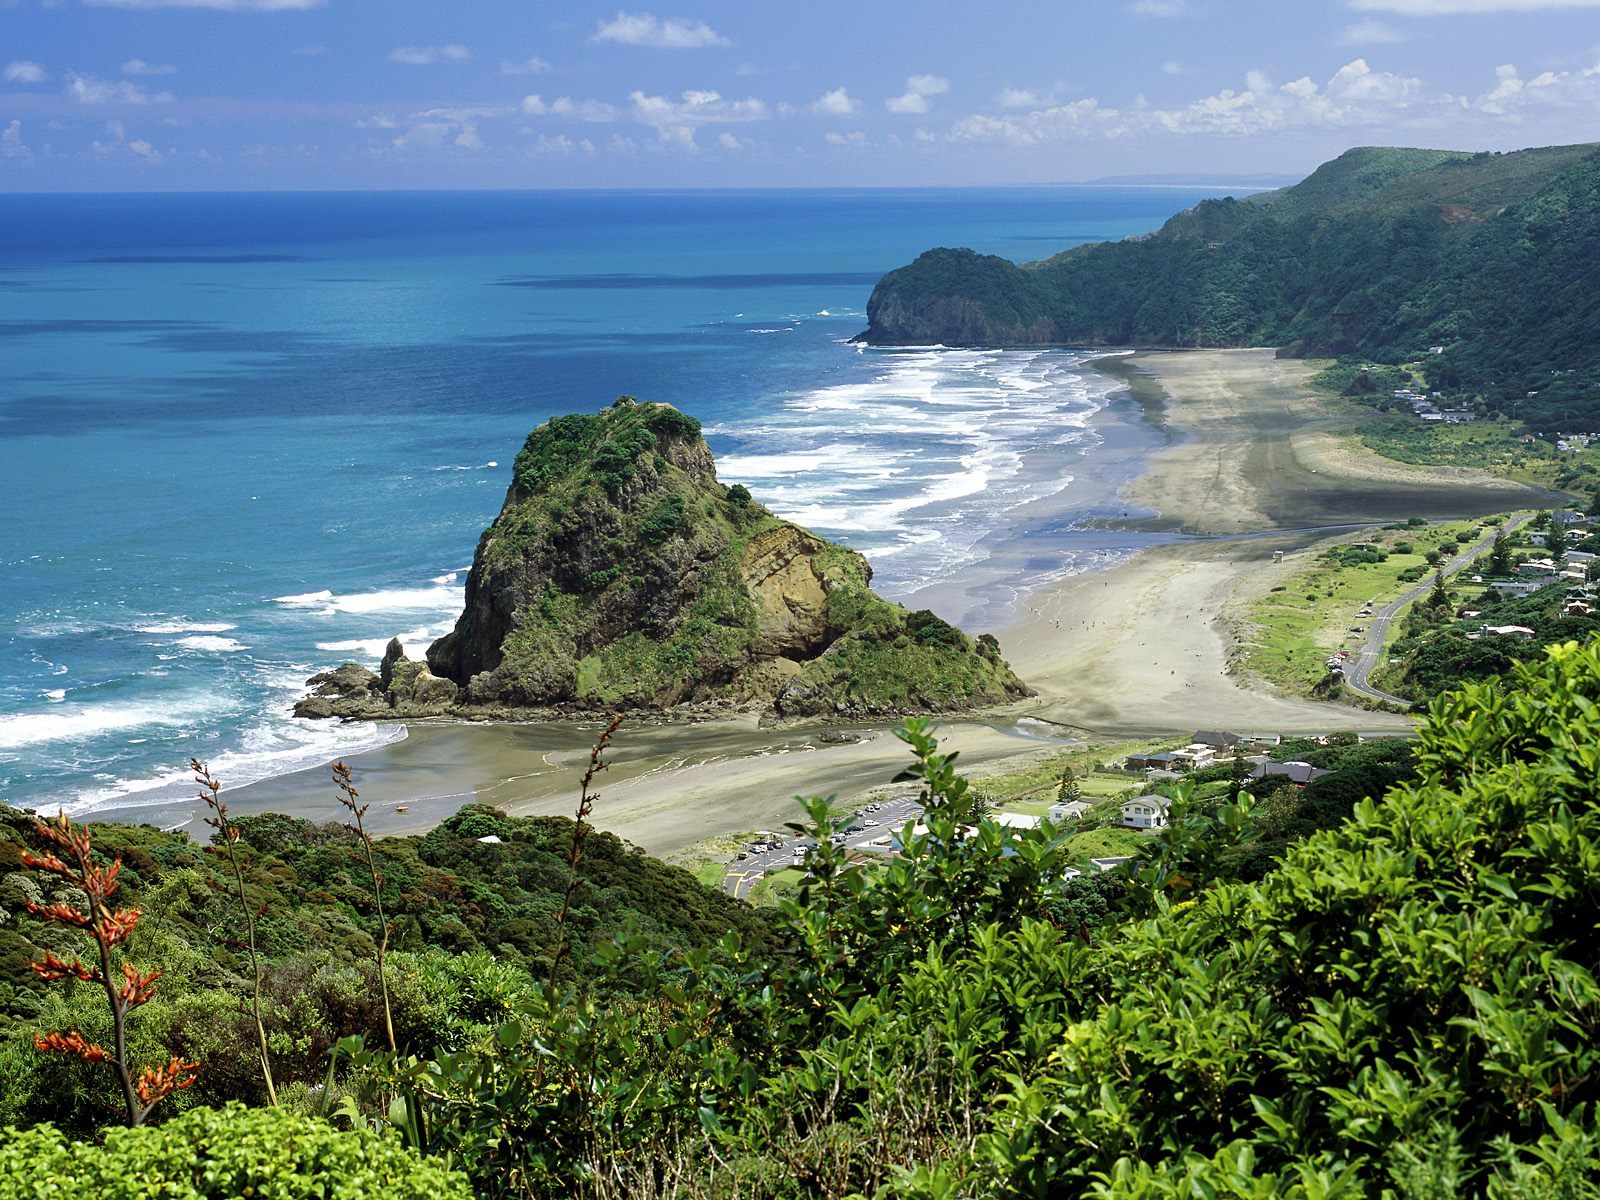 Penembakan New Zealand Pinterest: Piha Beach - Auckland, New Zealand